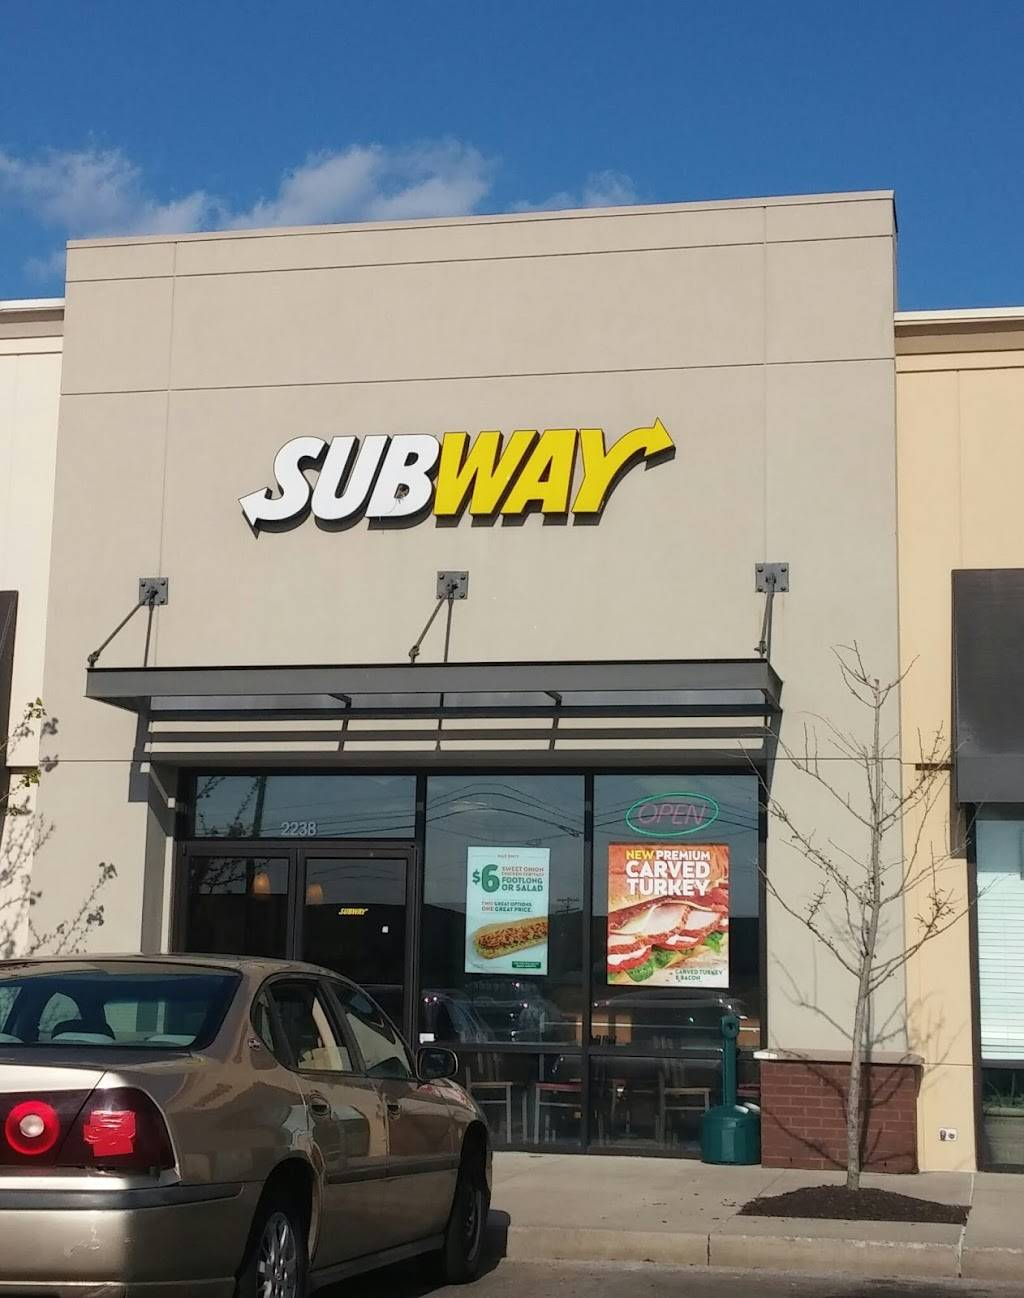 Subway | restaurant | 2238 South Smithville Road, Kettering, OH 45420, USA | 9372530321 OR +1 937-253-0321